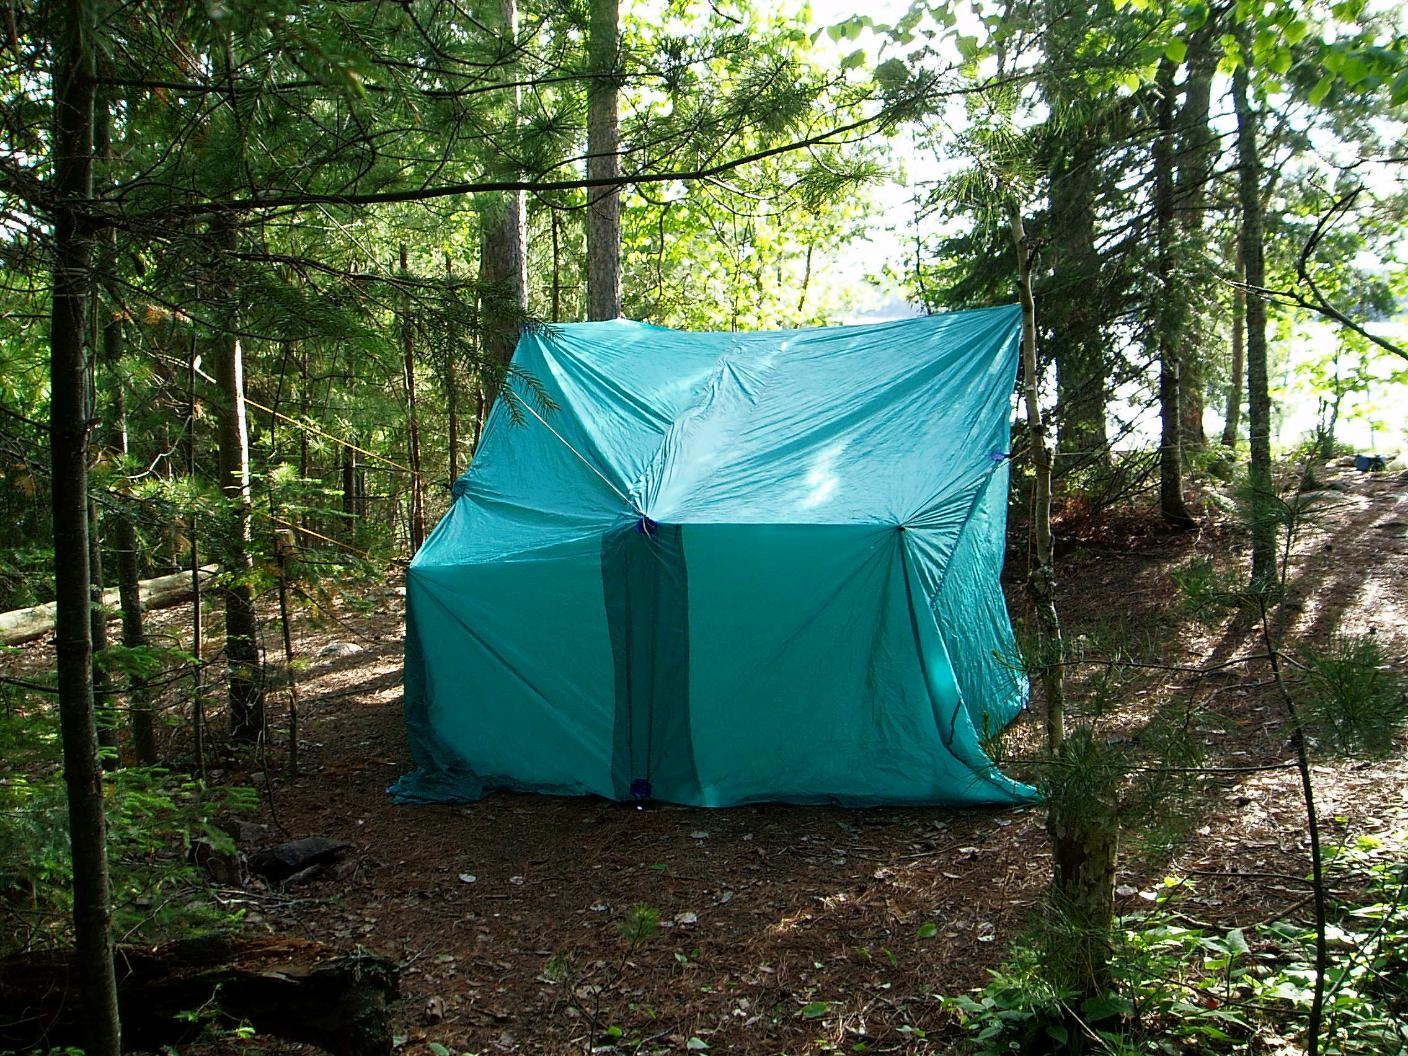 Bwca Wcd Baker Tent With Plans Boundary Waters Gear Forum